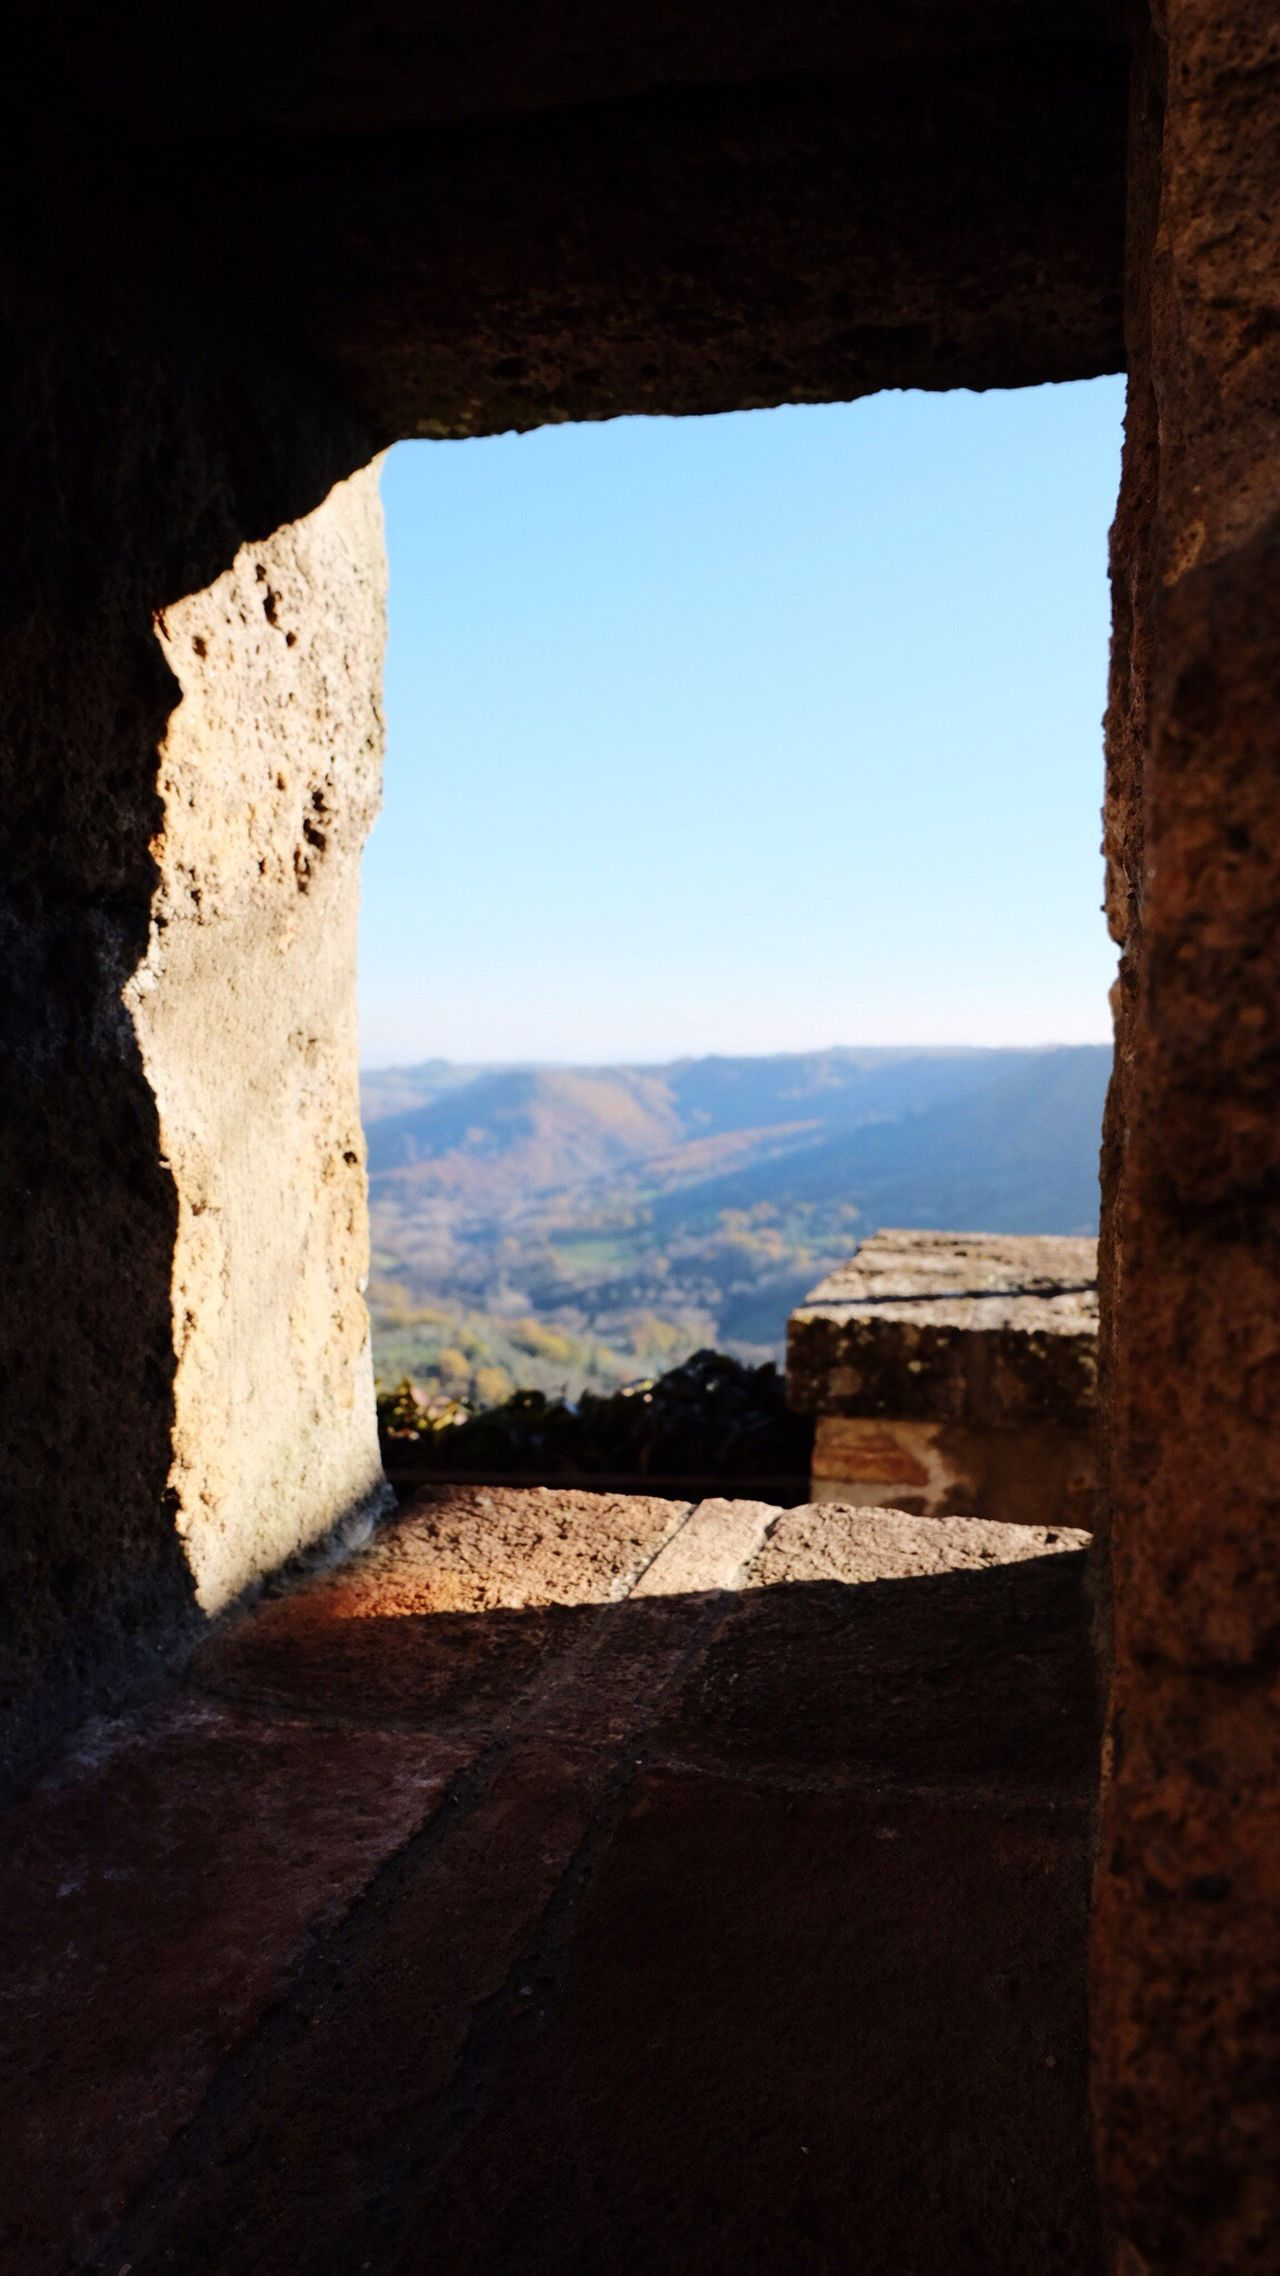 Sky Built Structure Architecture History No People Day Nature Indoors  Orvieto, Italy Outdoors Clear Sky Blue Rose Window Window Nature Beuty Of Nature Civita Civita Di Bagnoregio